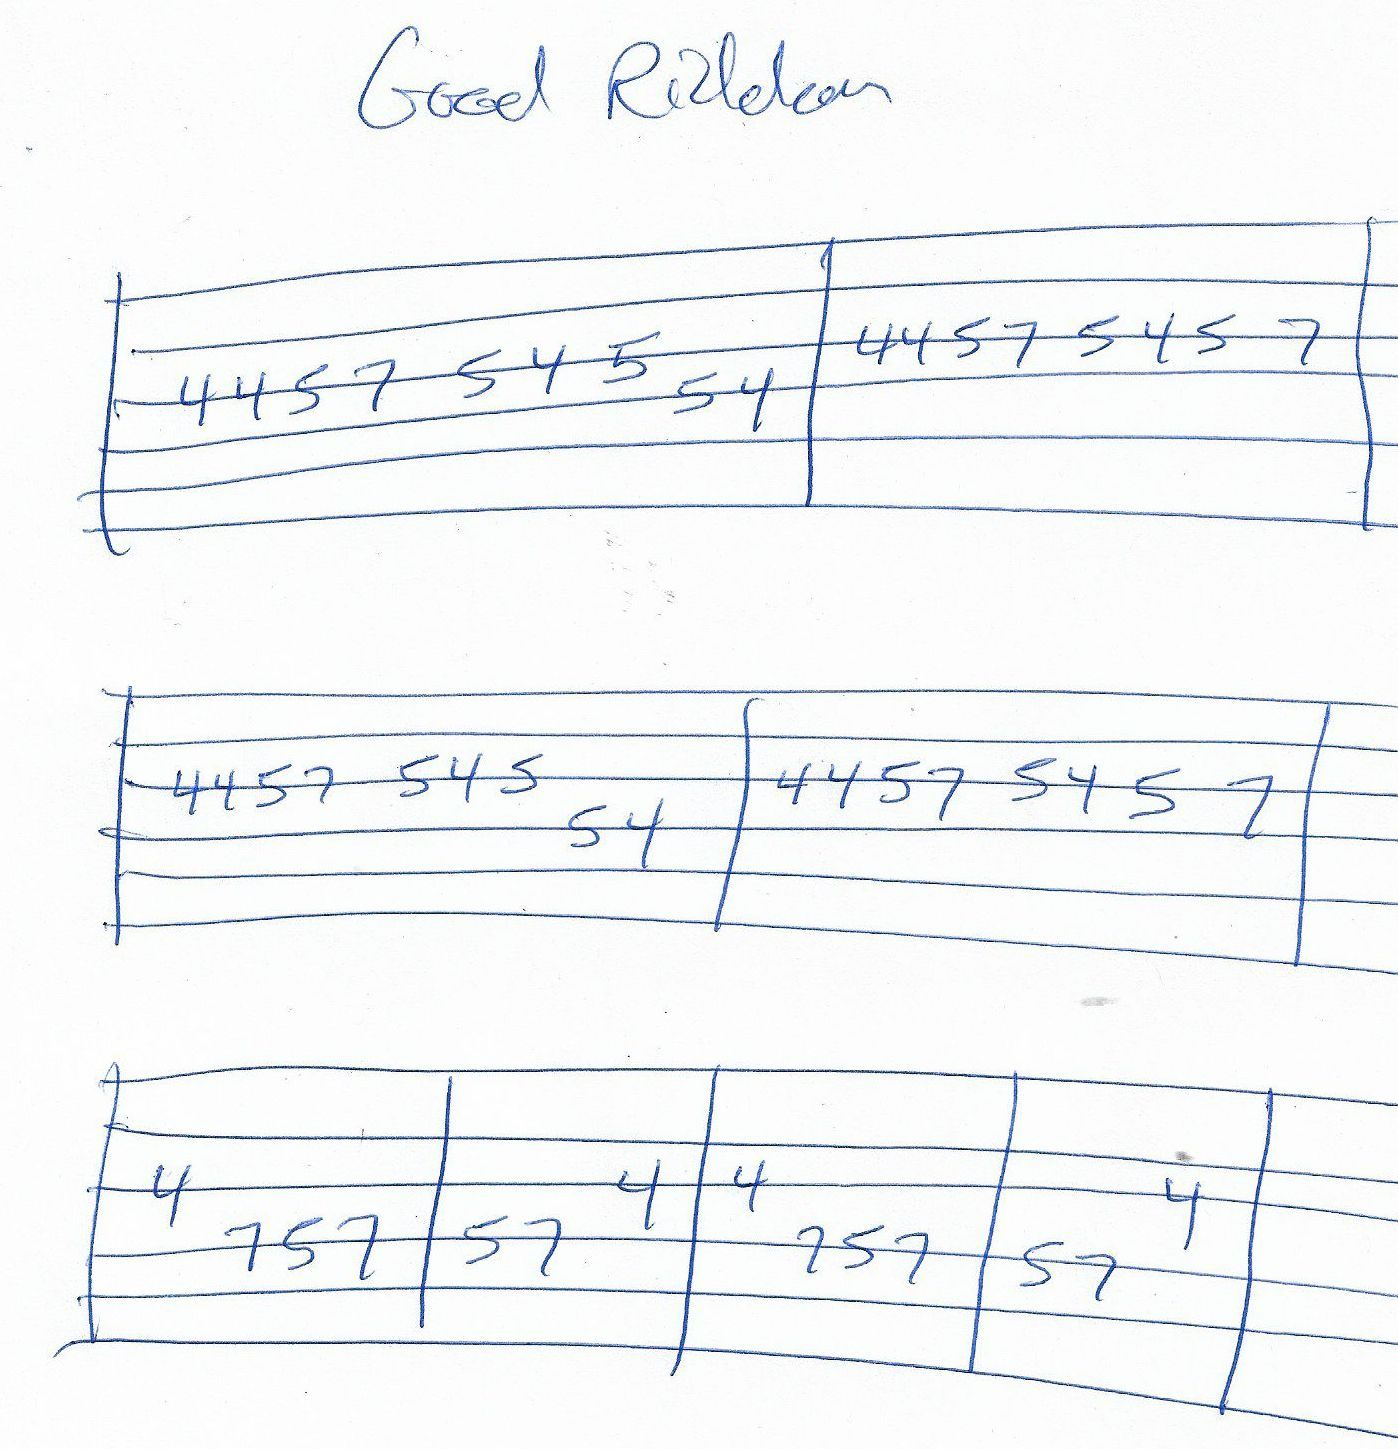 Good Riddance Green Day Guitar Solo Tab Guitar Solo Green Day